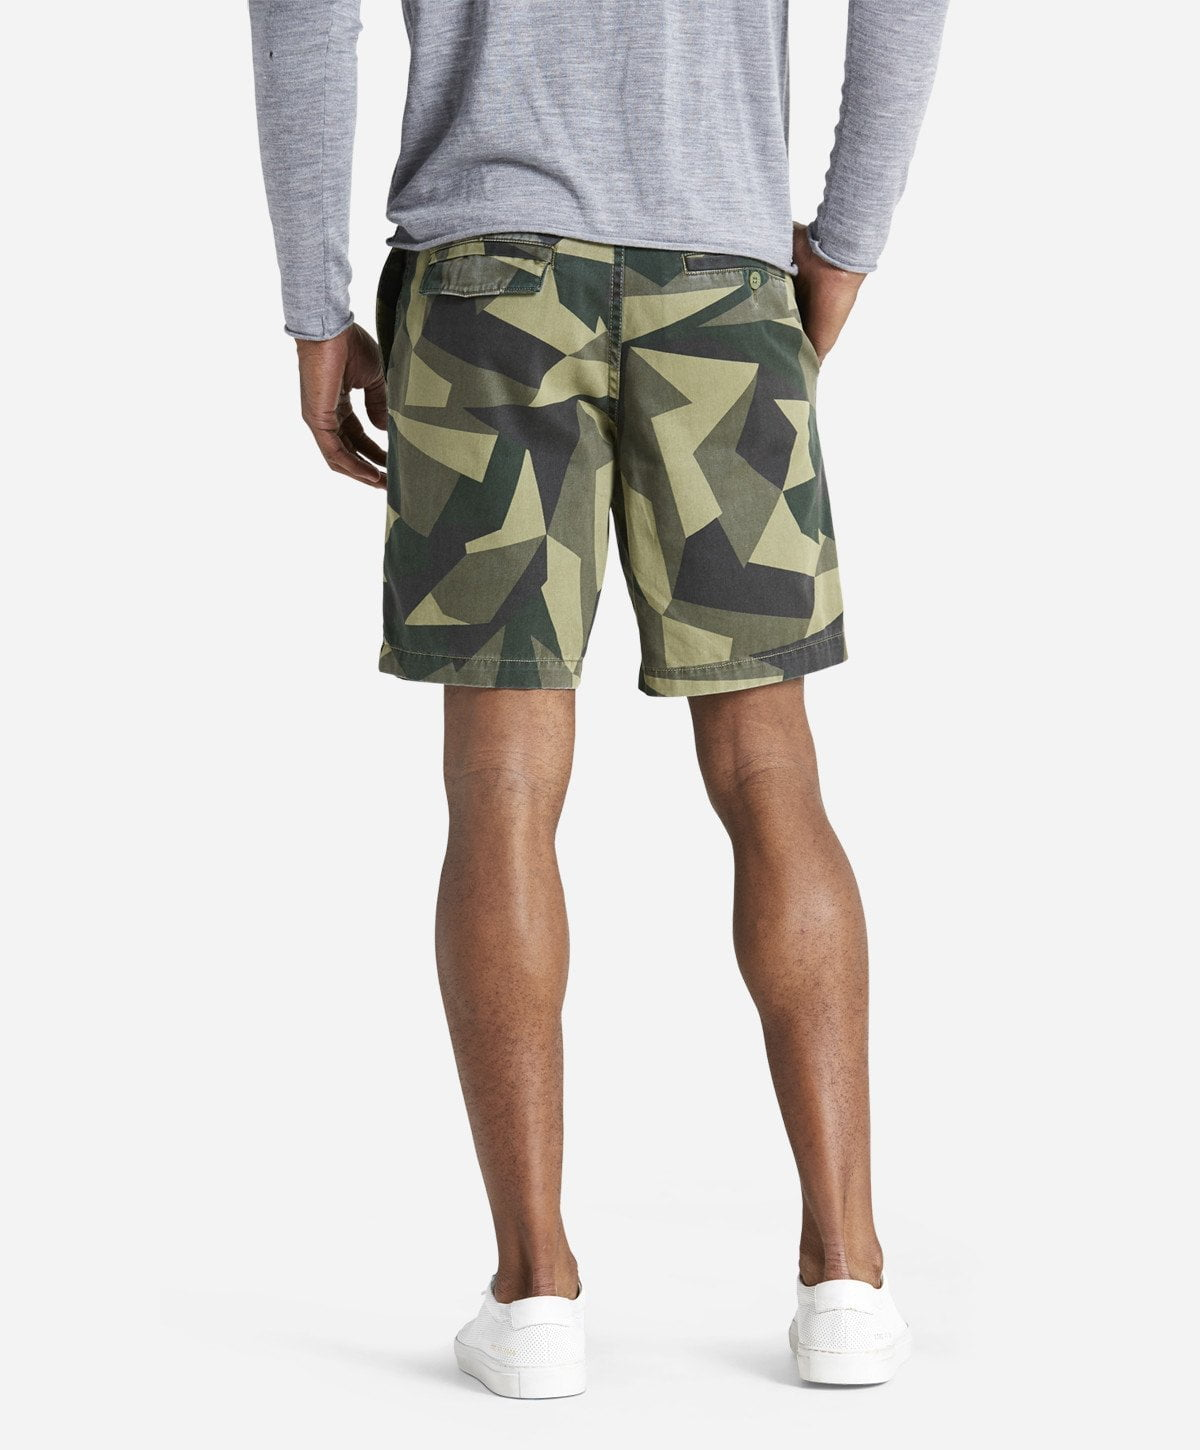 Fatigue Short - Olive Drab